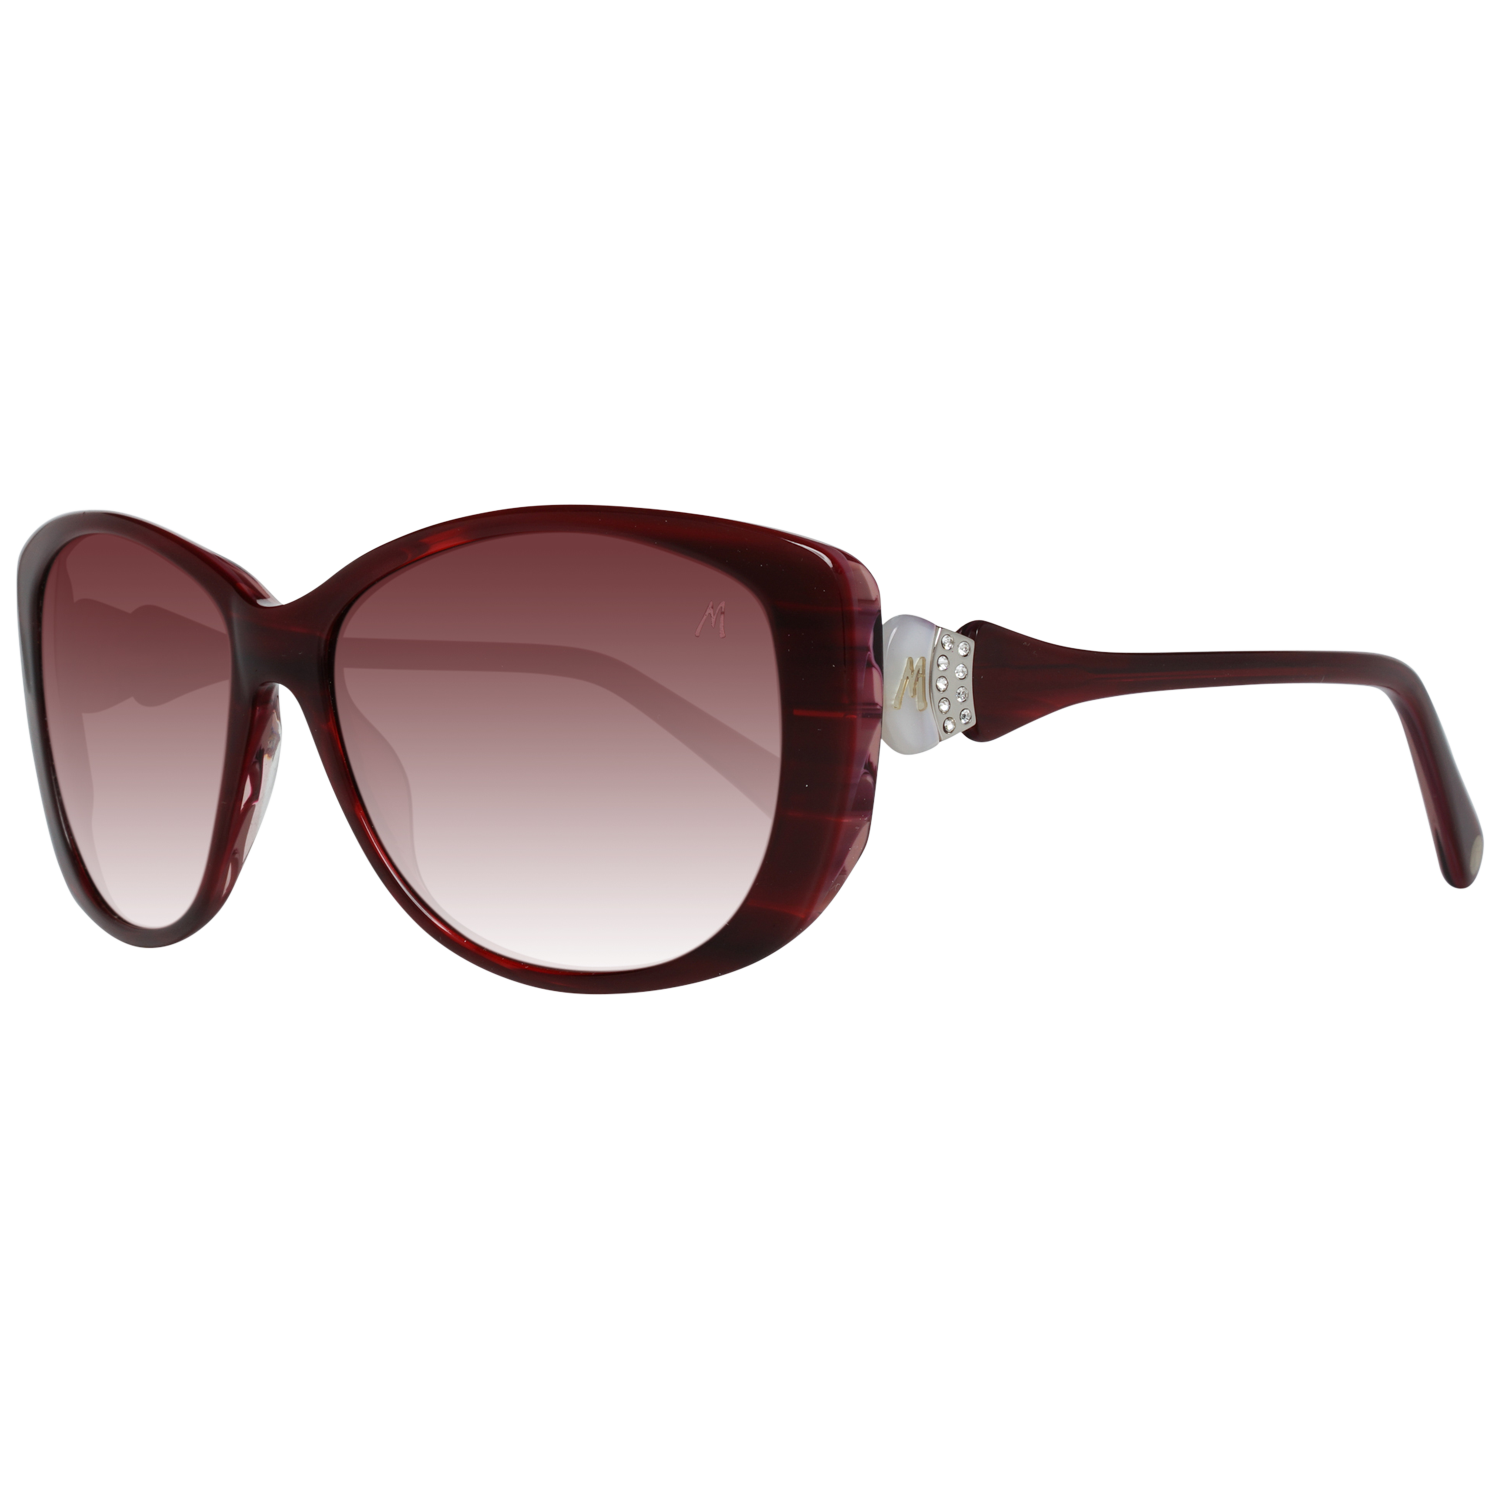 Guess by Marciano Sunglasses GM0668 F39 57 Red